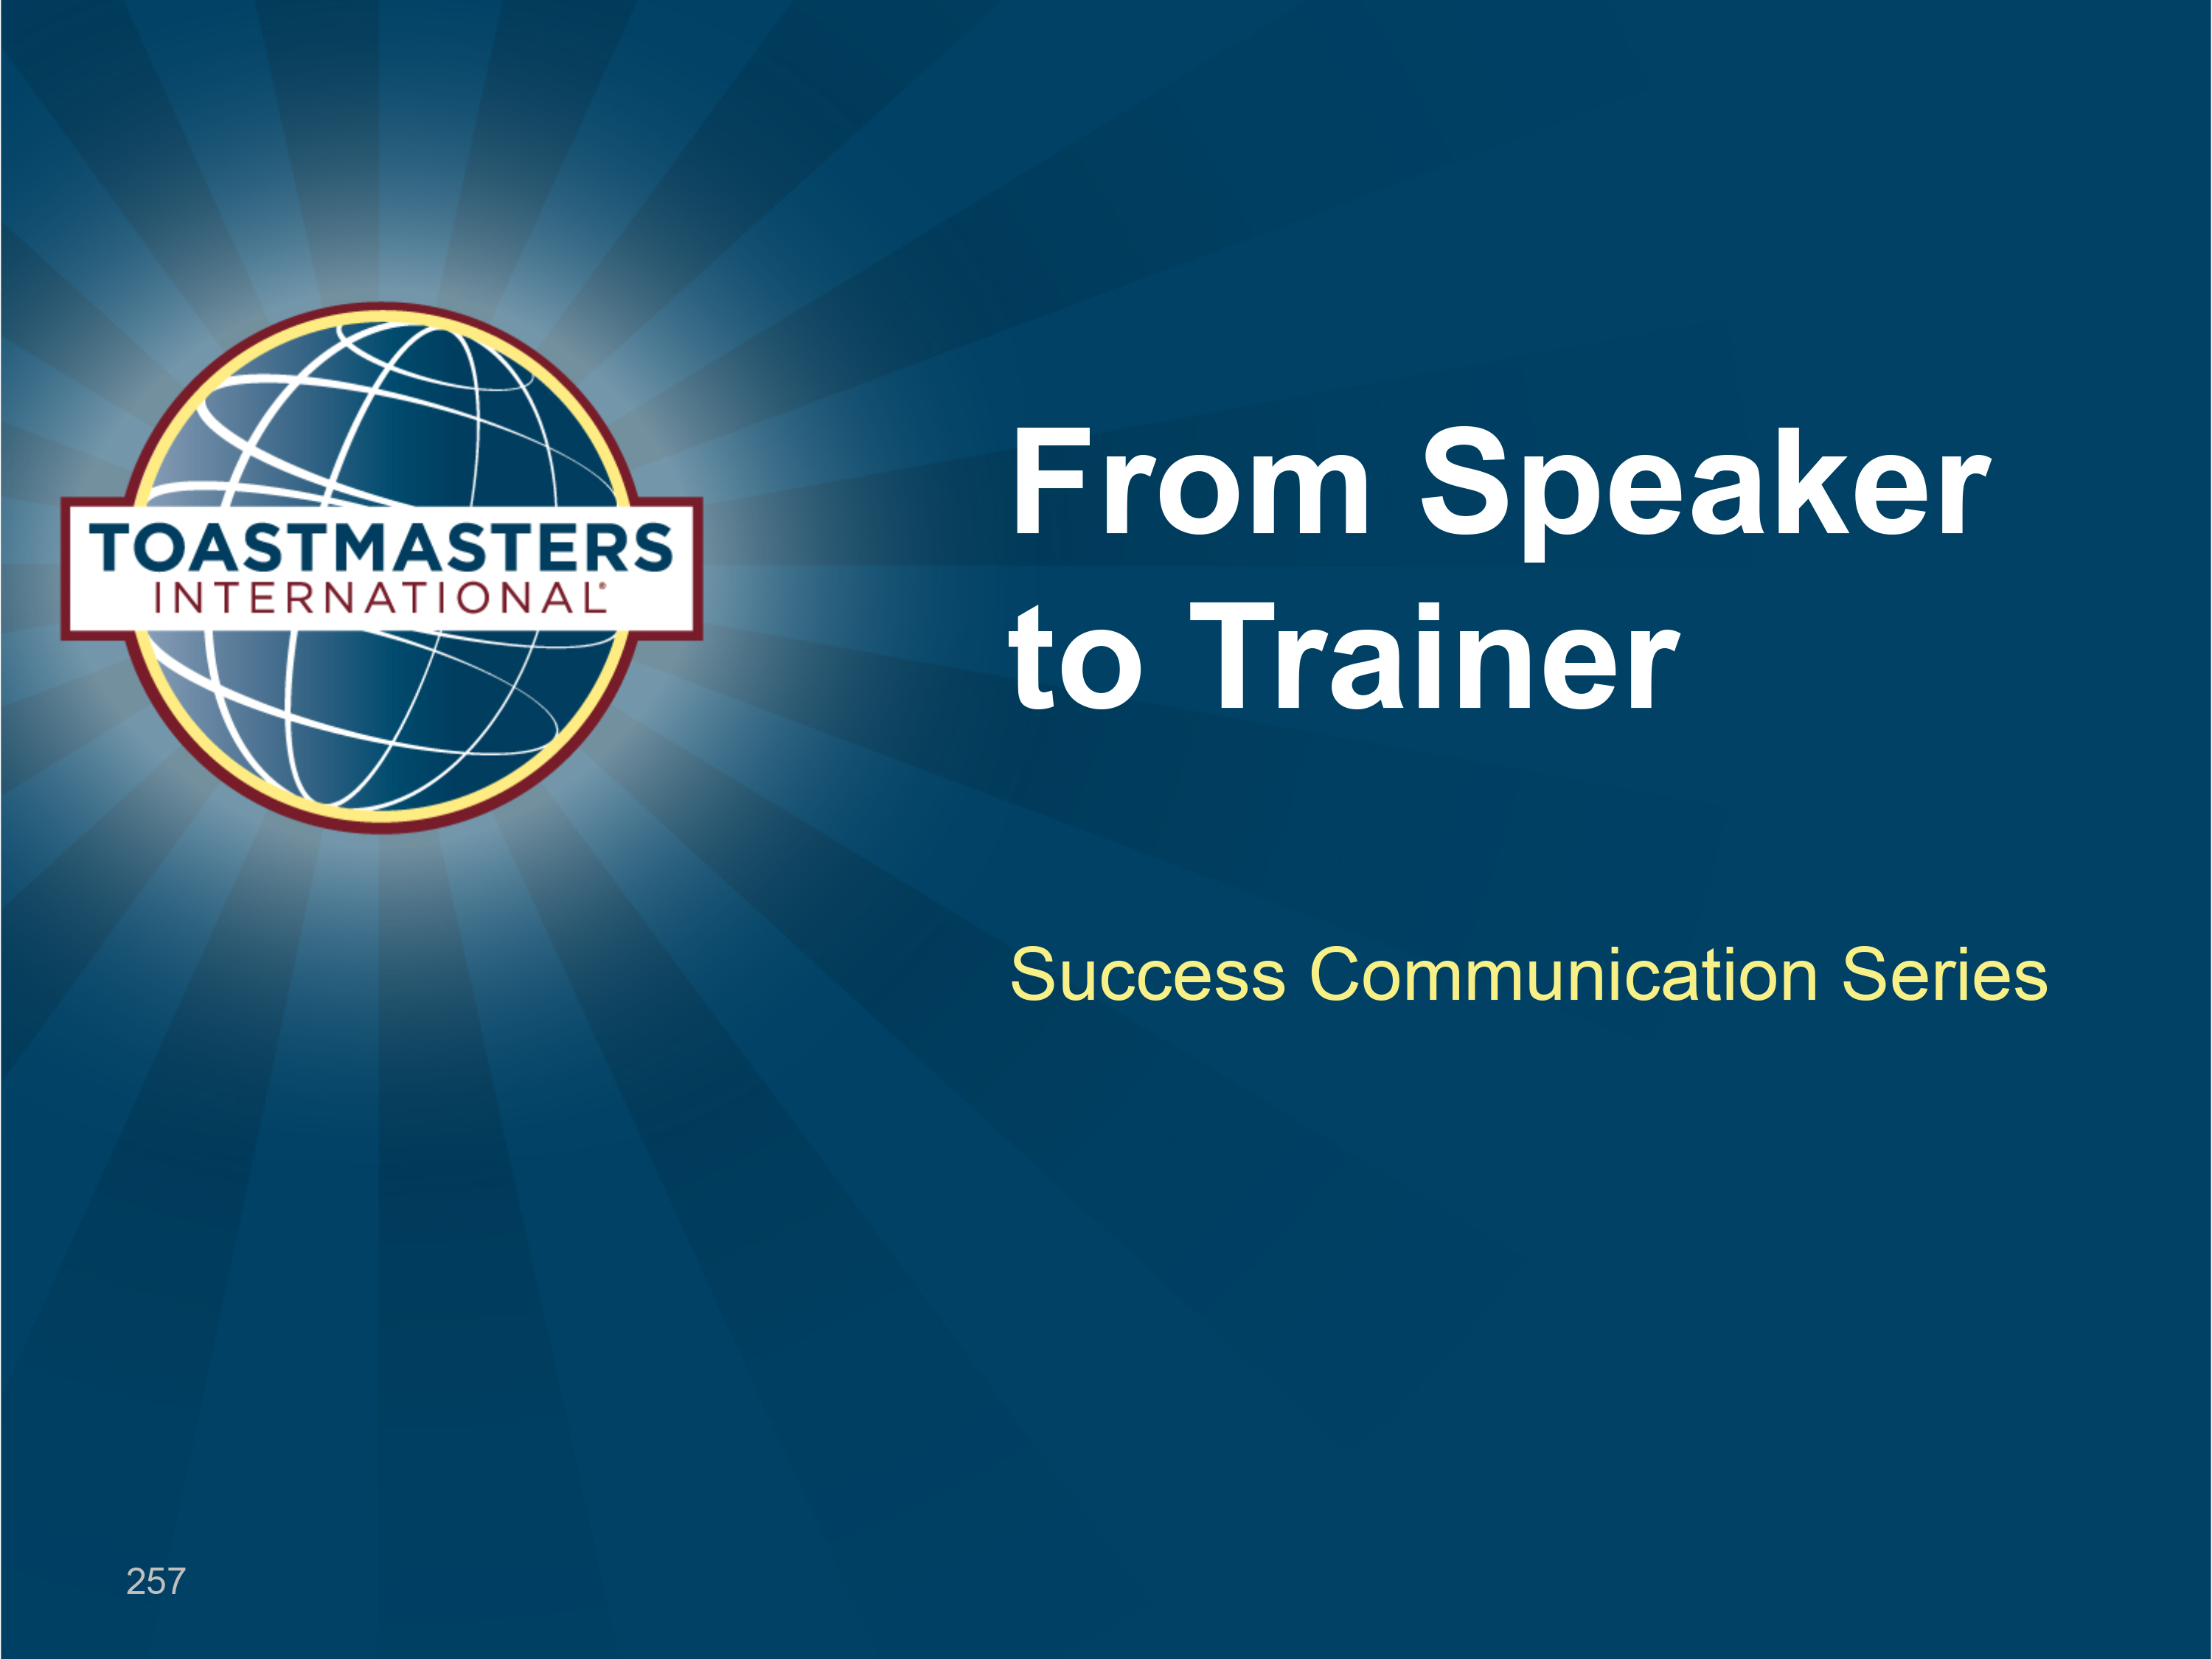 From Speaker to Trainer (Power Point)